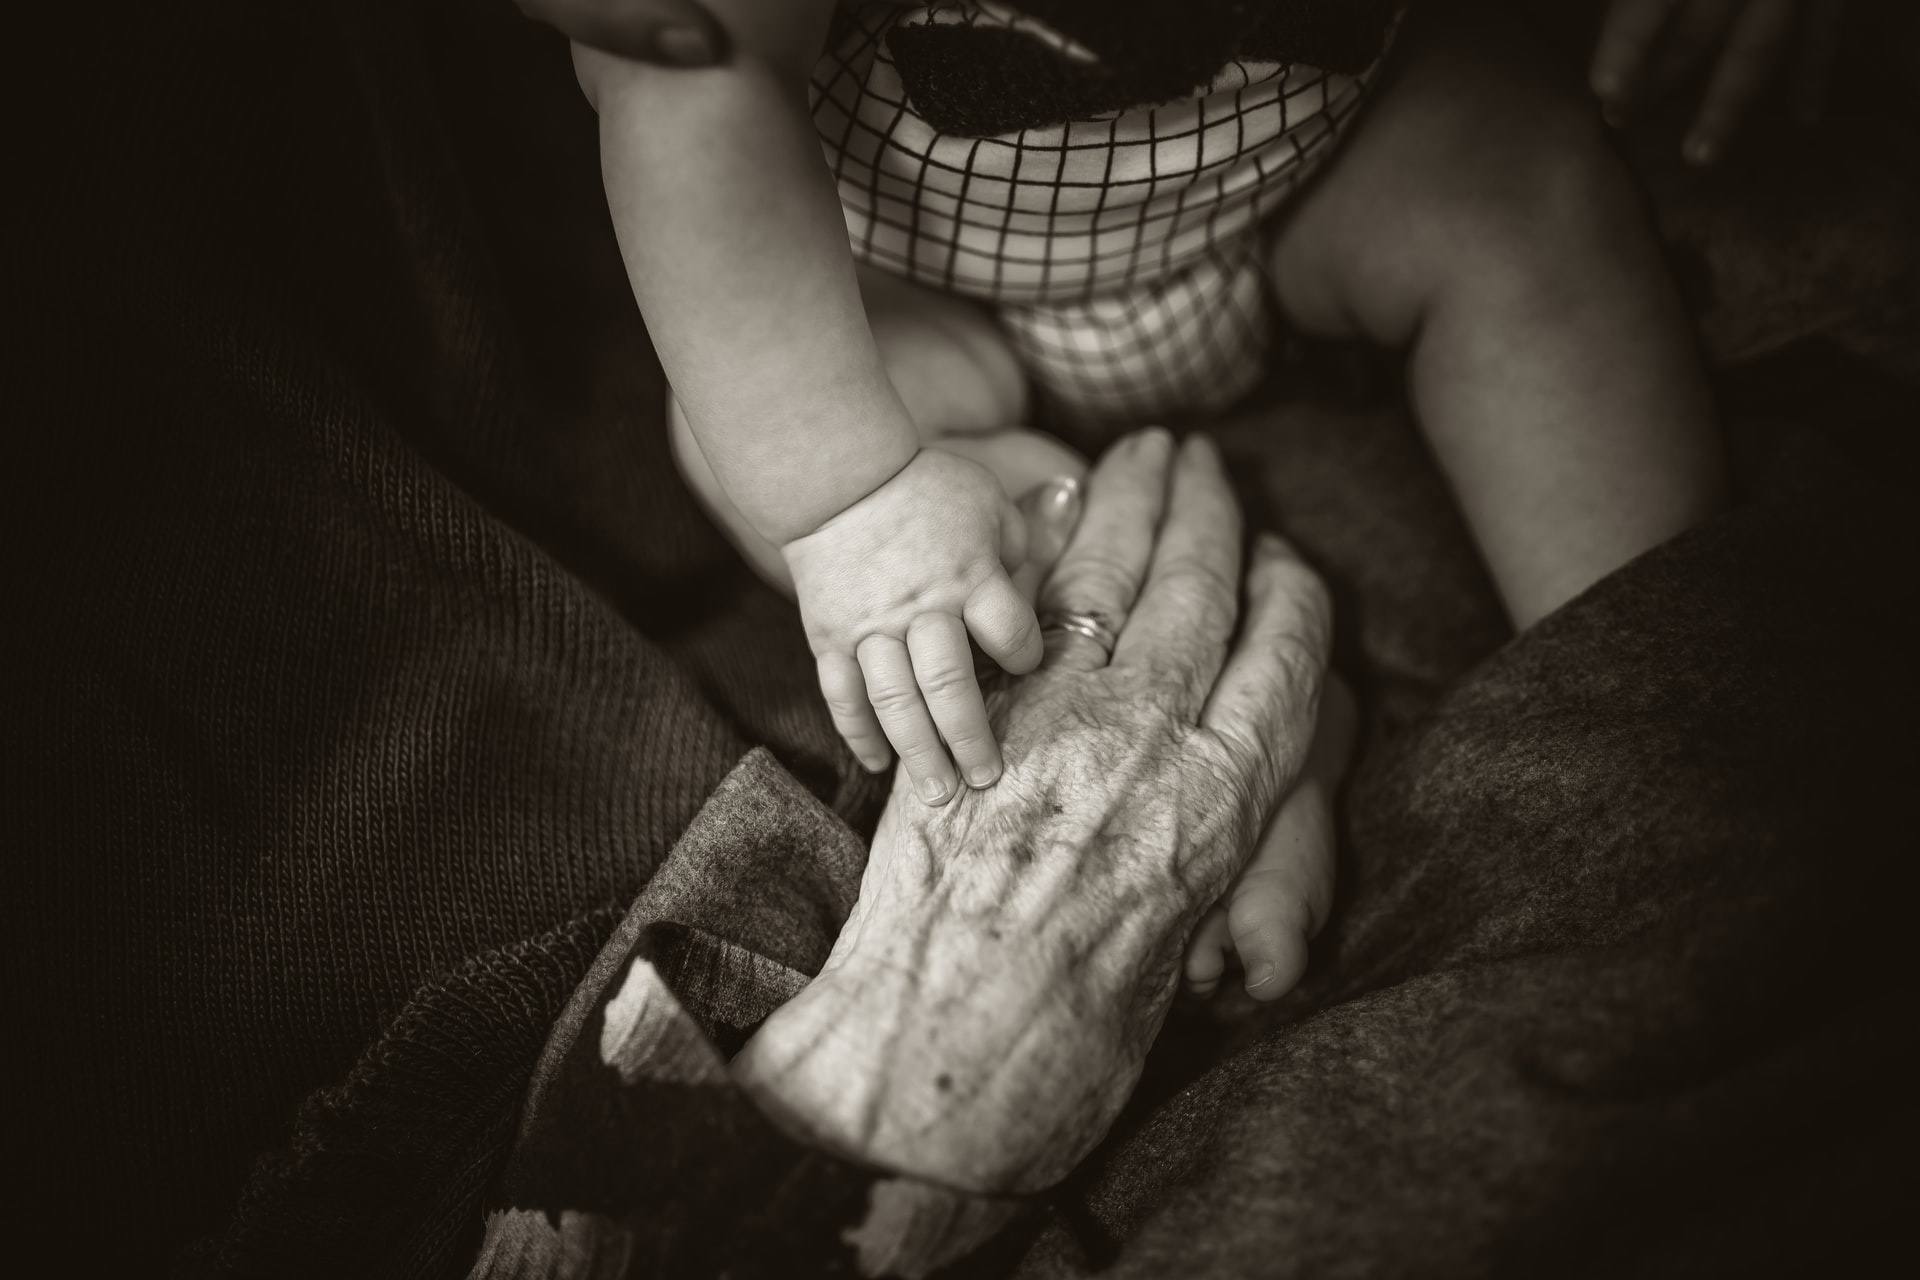 An elderly person holds hands with a baby in a black and white photo